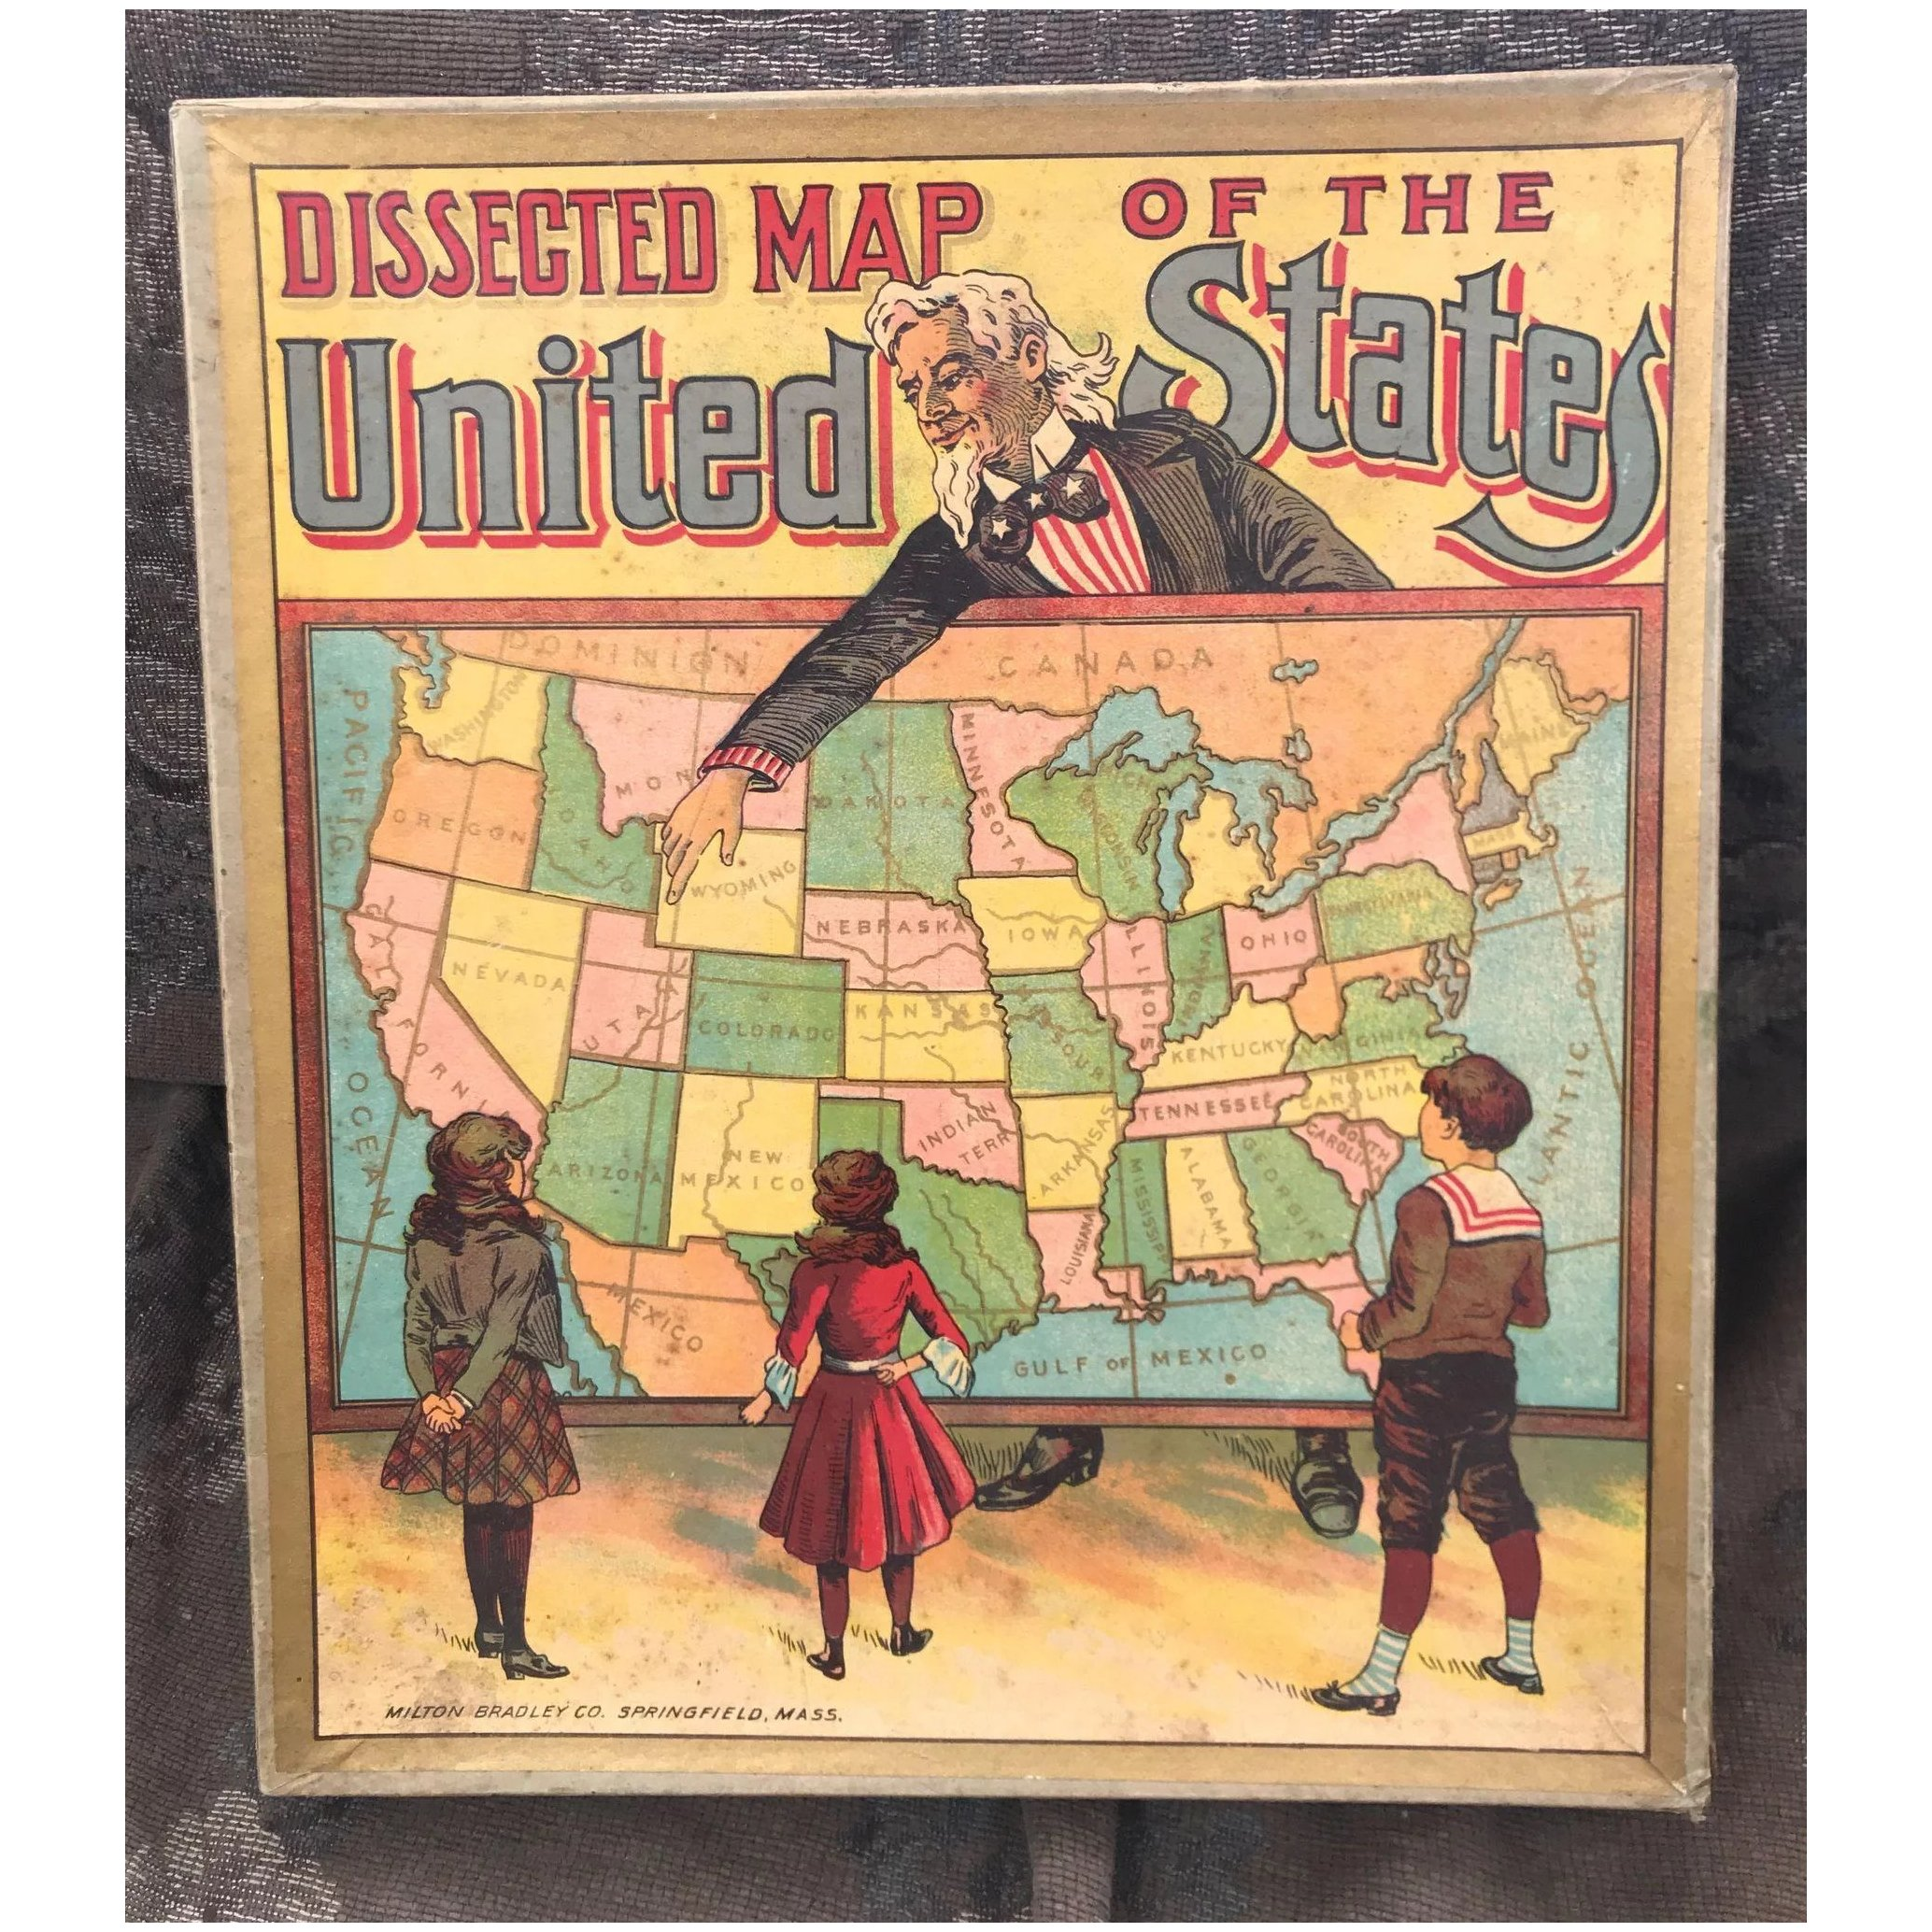 Milton dley Boxed Antique Map Puzzle of the United States Circa 1900 on world map puzzle, united states jigsaw puzzle, map of mexico puzzle, map of germany puzzle, map of hawaii puzzle, map of africa puzzle, u s map puzzle, map of ireland puzzle, united states wooden puzzle, map of israel puzzle, map of new york city puzzle, map of jamaica puzzle, map of iowa puzzle, new york united states puzzle, states and capitals puzzle, space puzzle, united states of america puzzle, south america puzzle, europe map puzzle, 50 states map puzzle,